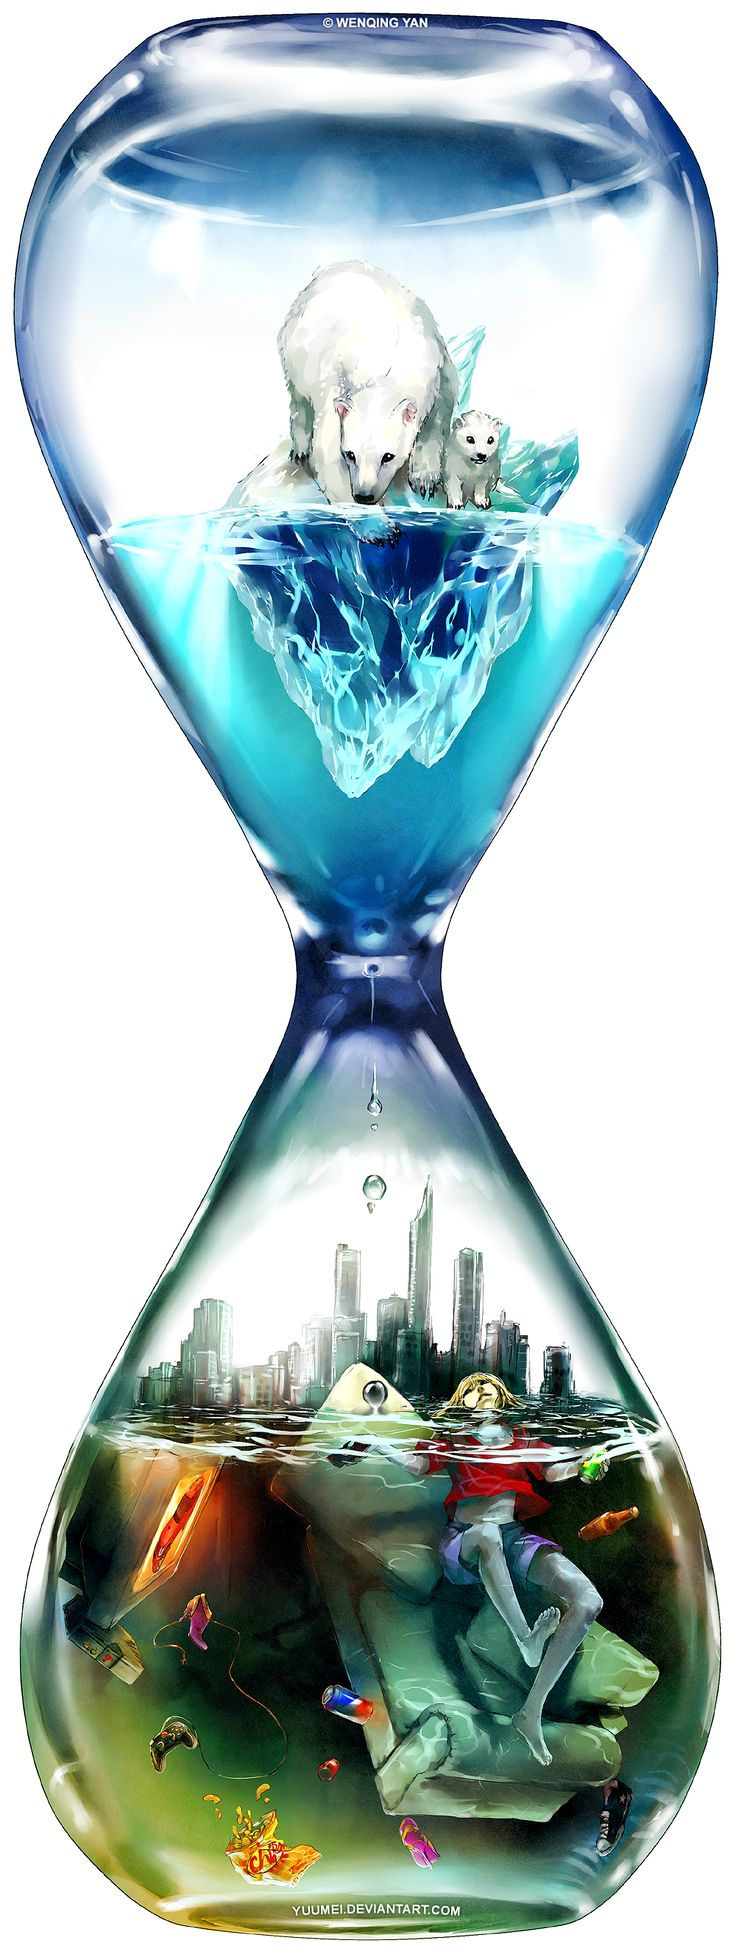 Countdown by yuumei.deviantart.com on @deviantART - Like my facebook: https://www.facebook.com/pages/Cool-Artwork/136281349874481